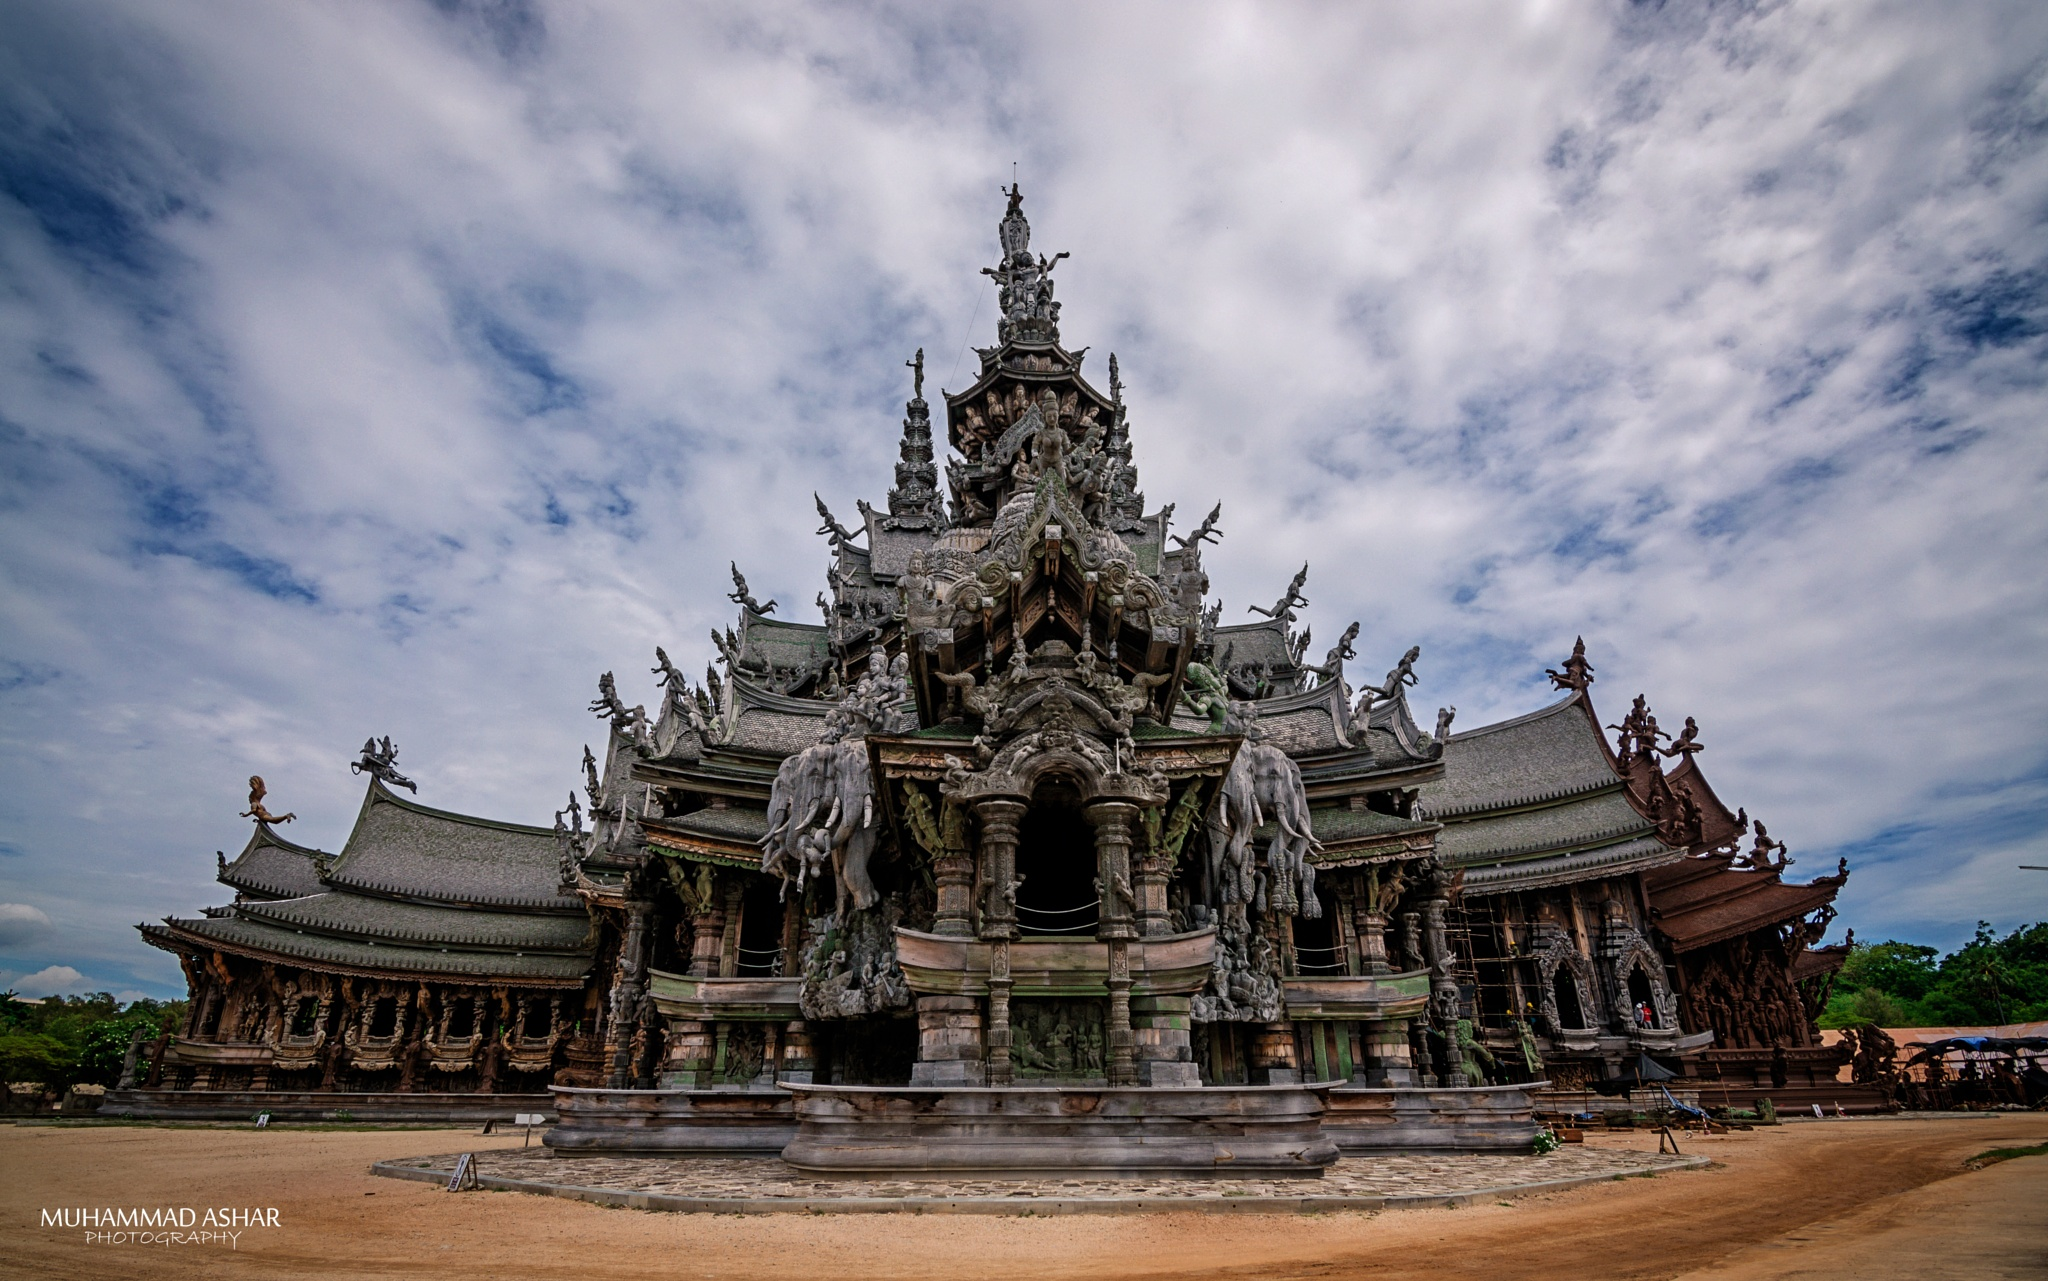 Sanctuary of Truth by Muhammad Ashar